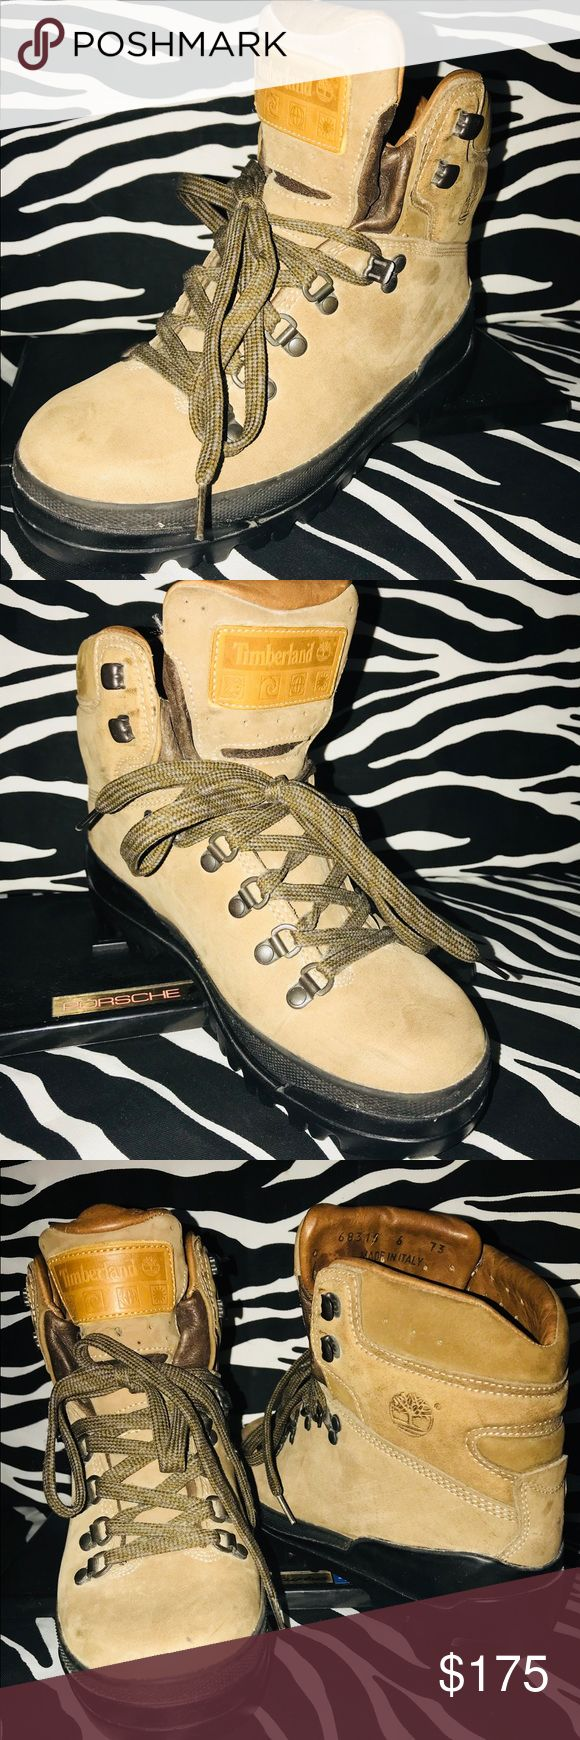 TIMBERLAND Hiking Boots Beige 40 Below Size 6 Excellent Like New Condition - Ready to Climb  - Made In Italy  - Size 6 - Core Tex Lining  - Totally Clean Inside. Minor Scuffs - Competitive Offers Welcome  - Satisfaction Guaranteed Timberland Shoes Lace Up Boots